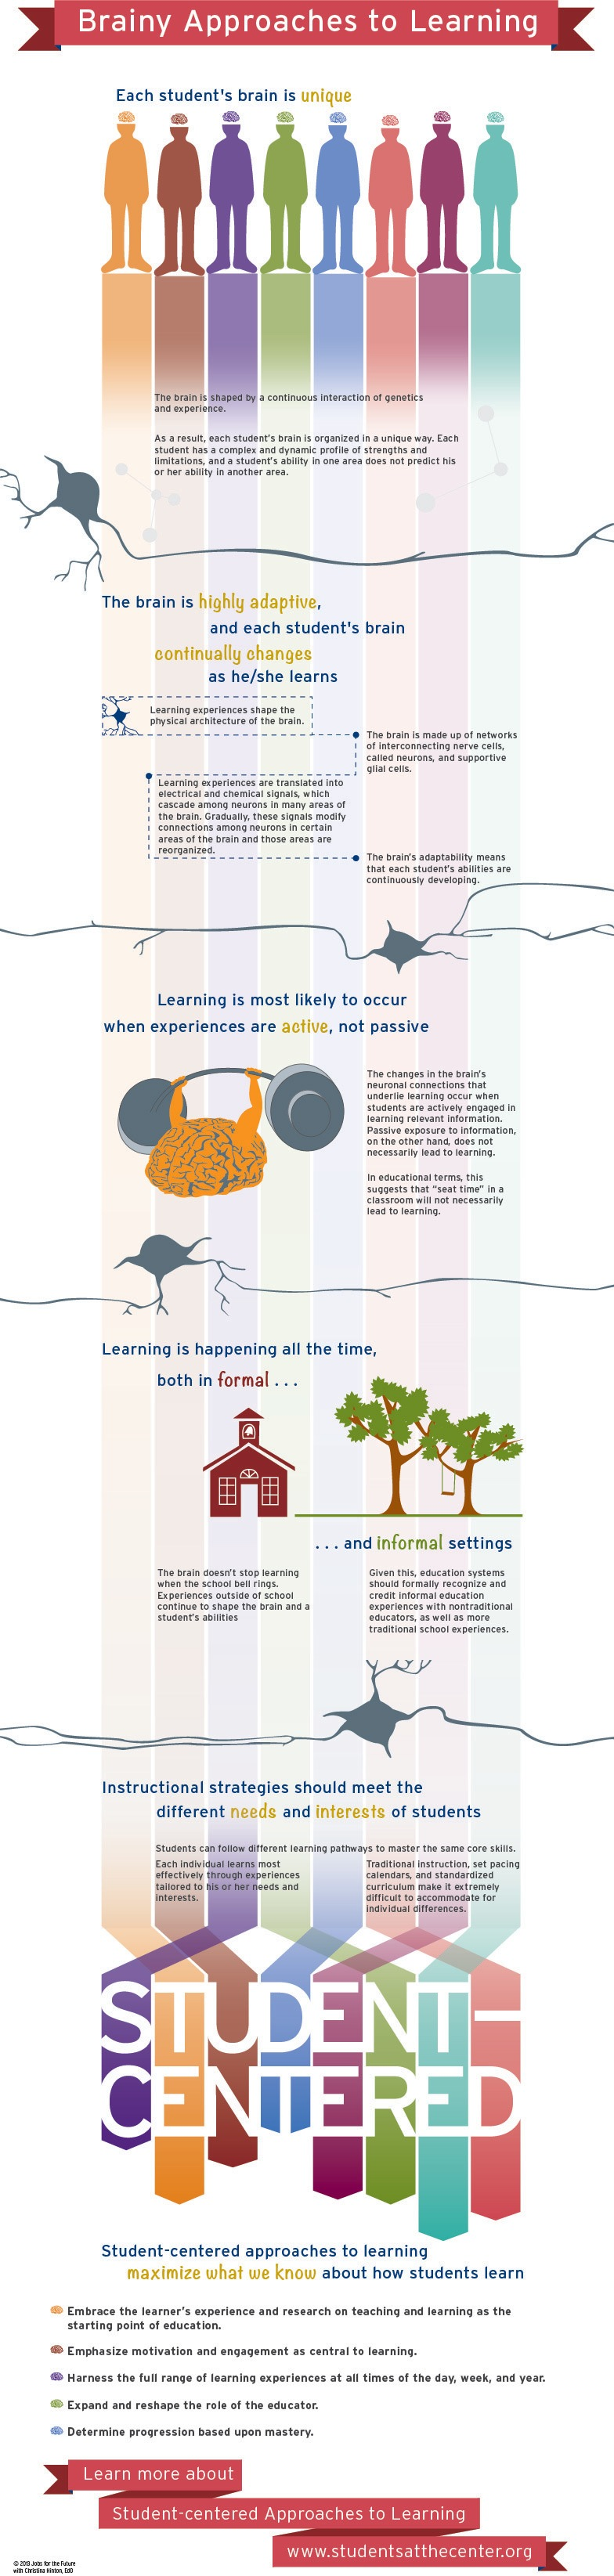 Brainy-Approaches-to-Learning-Infographic5